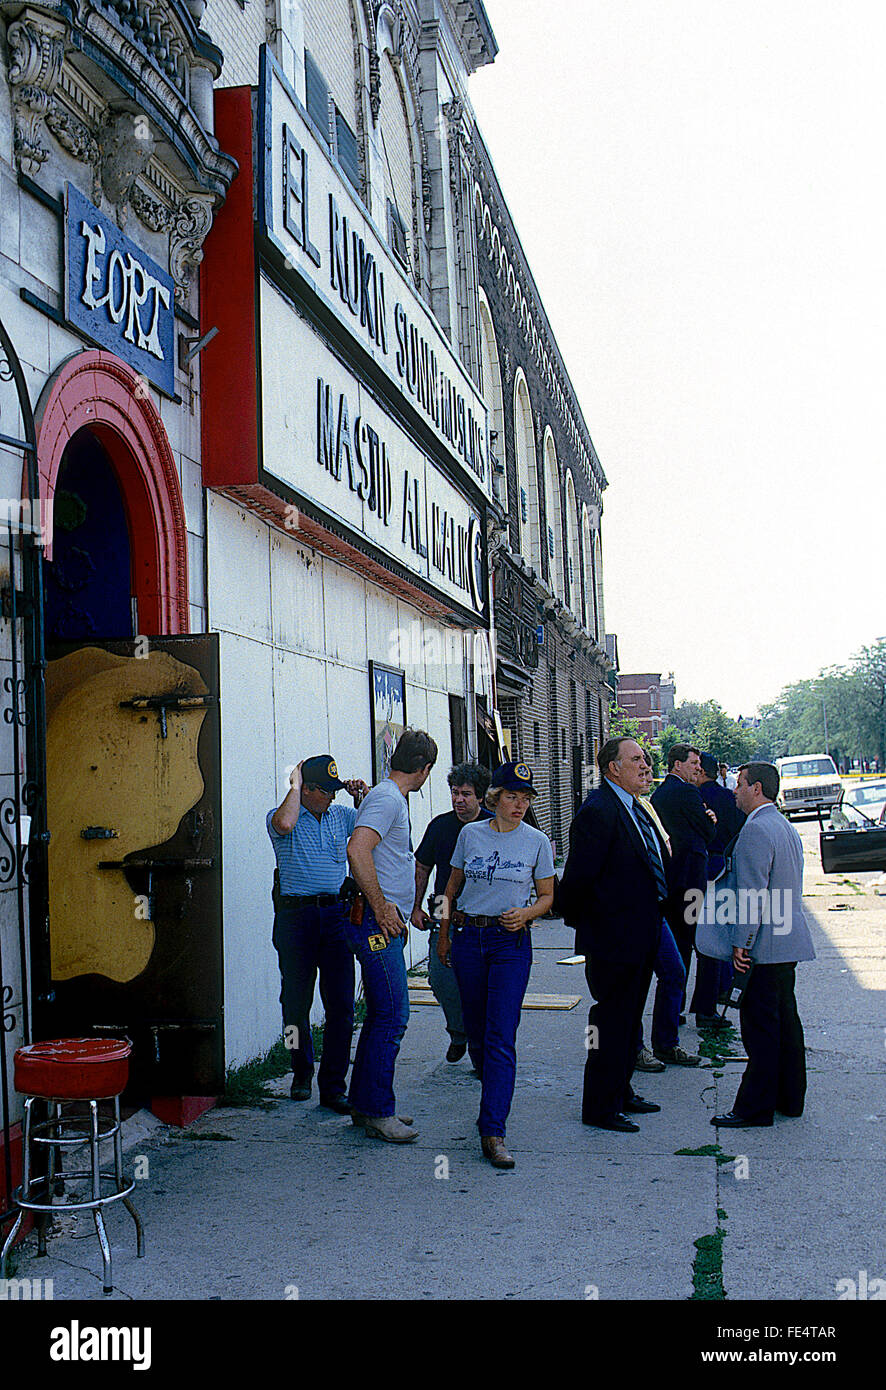 Chicago, Illinois, USA, 5th August, 1986 Federal agents along with Chicago Police raid the headquarters Temple building - Stock Image